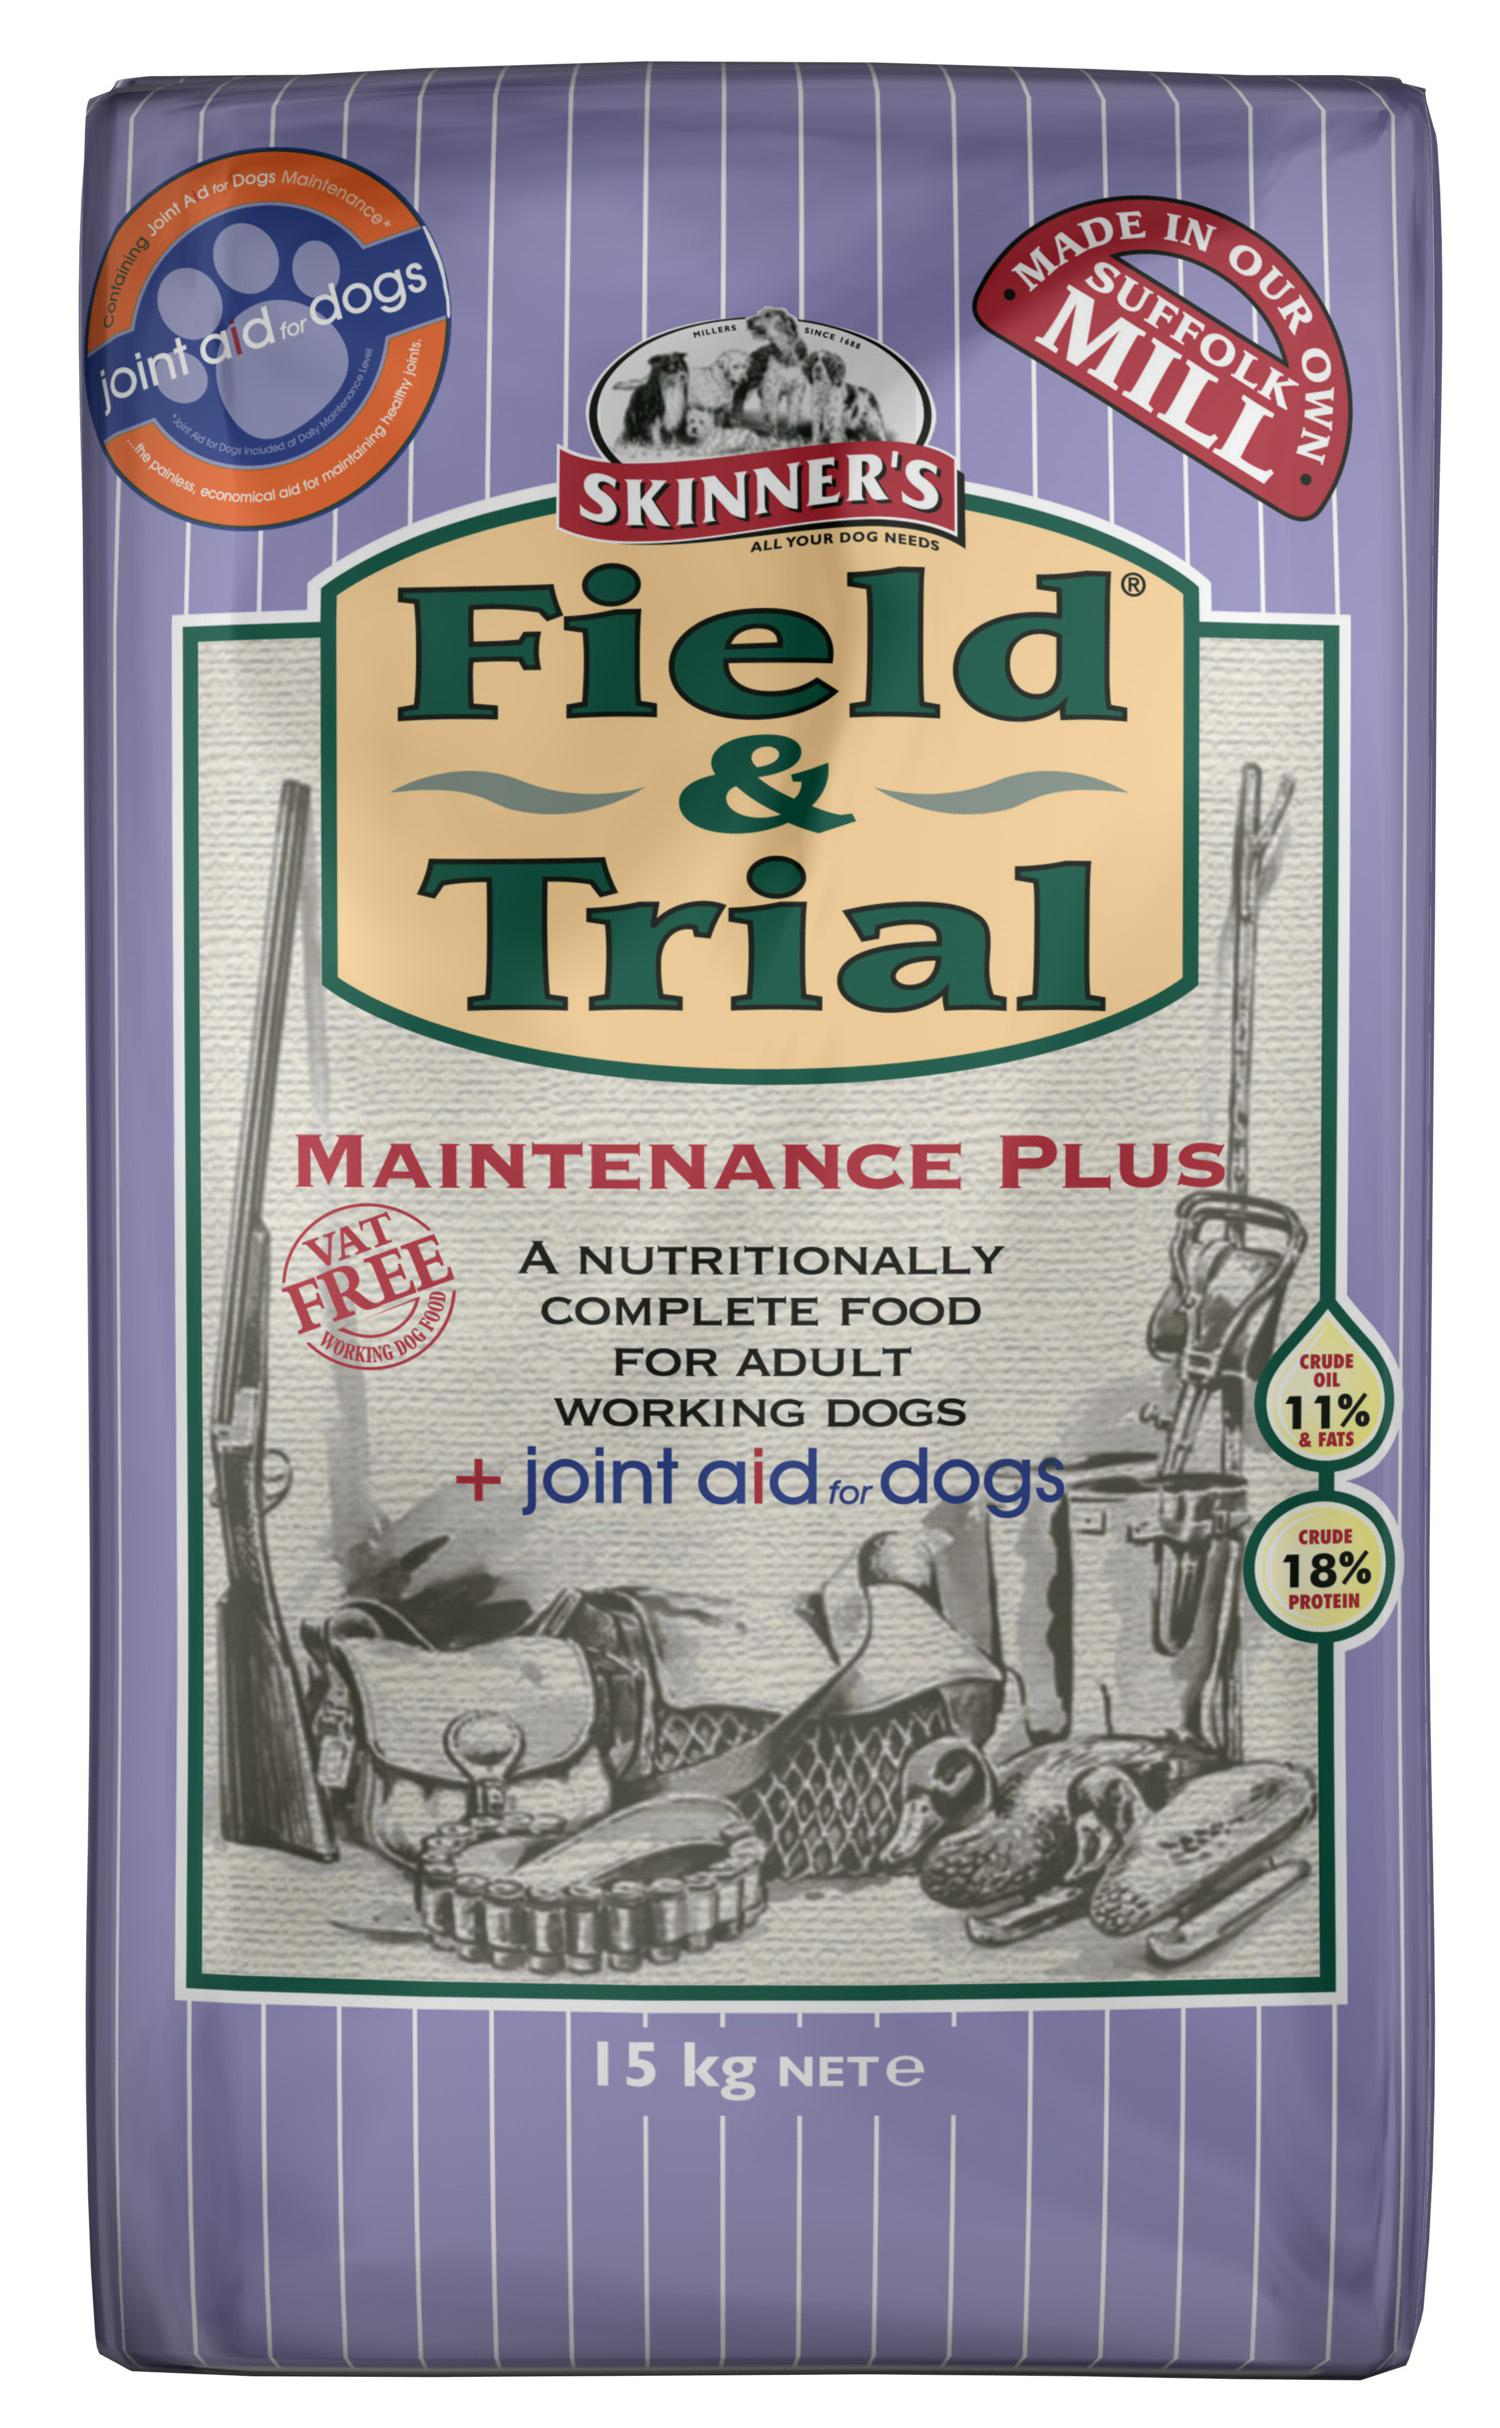 Skinners Field & Trial Maintenance